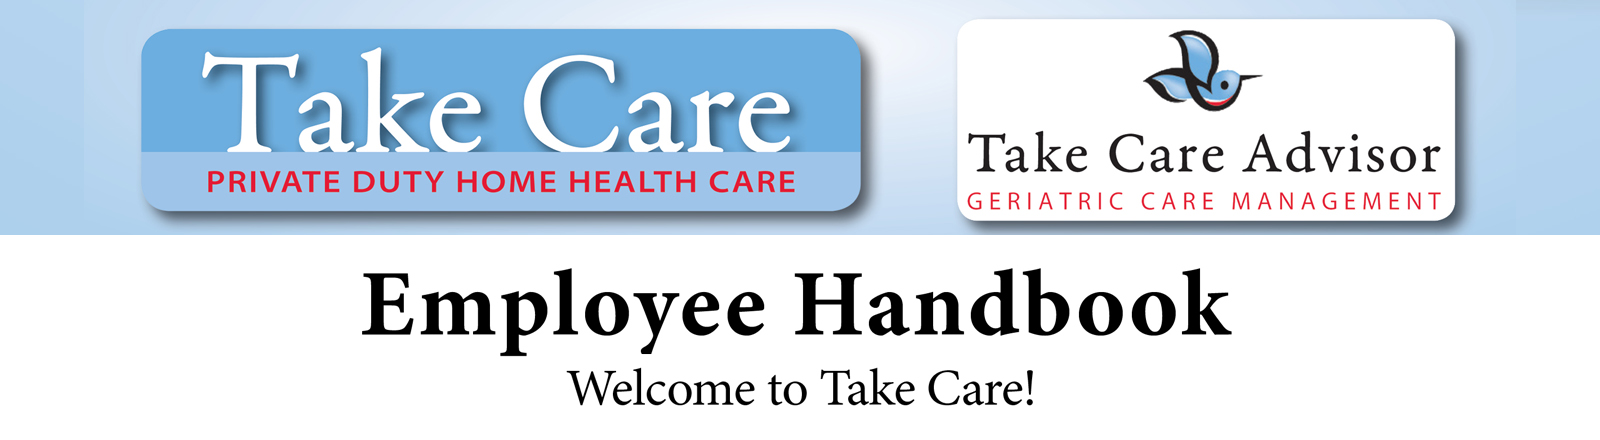 Employee Handbook Take Care Home Health Private Duty